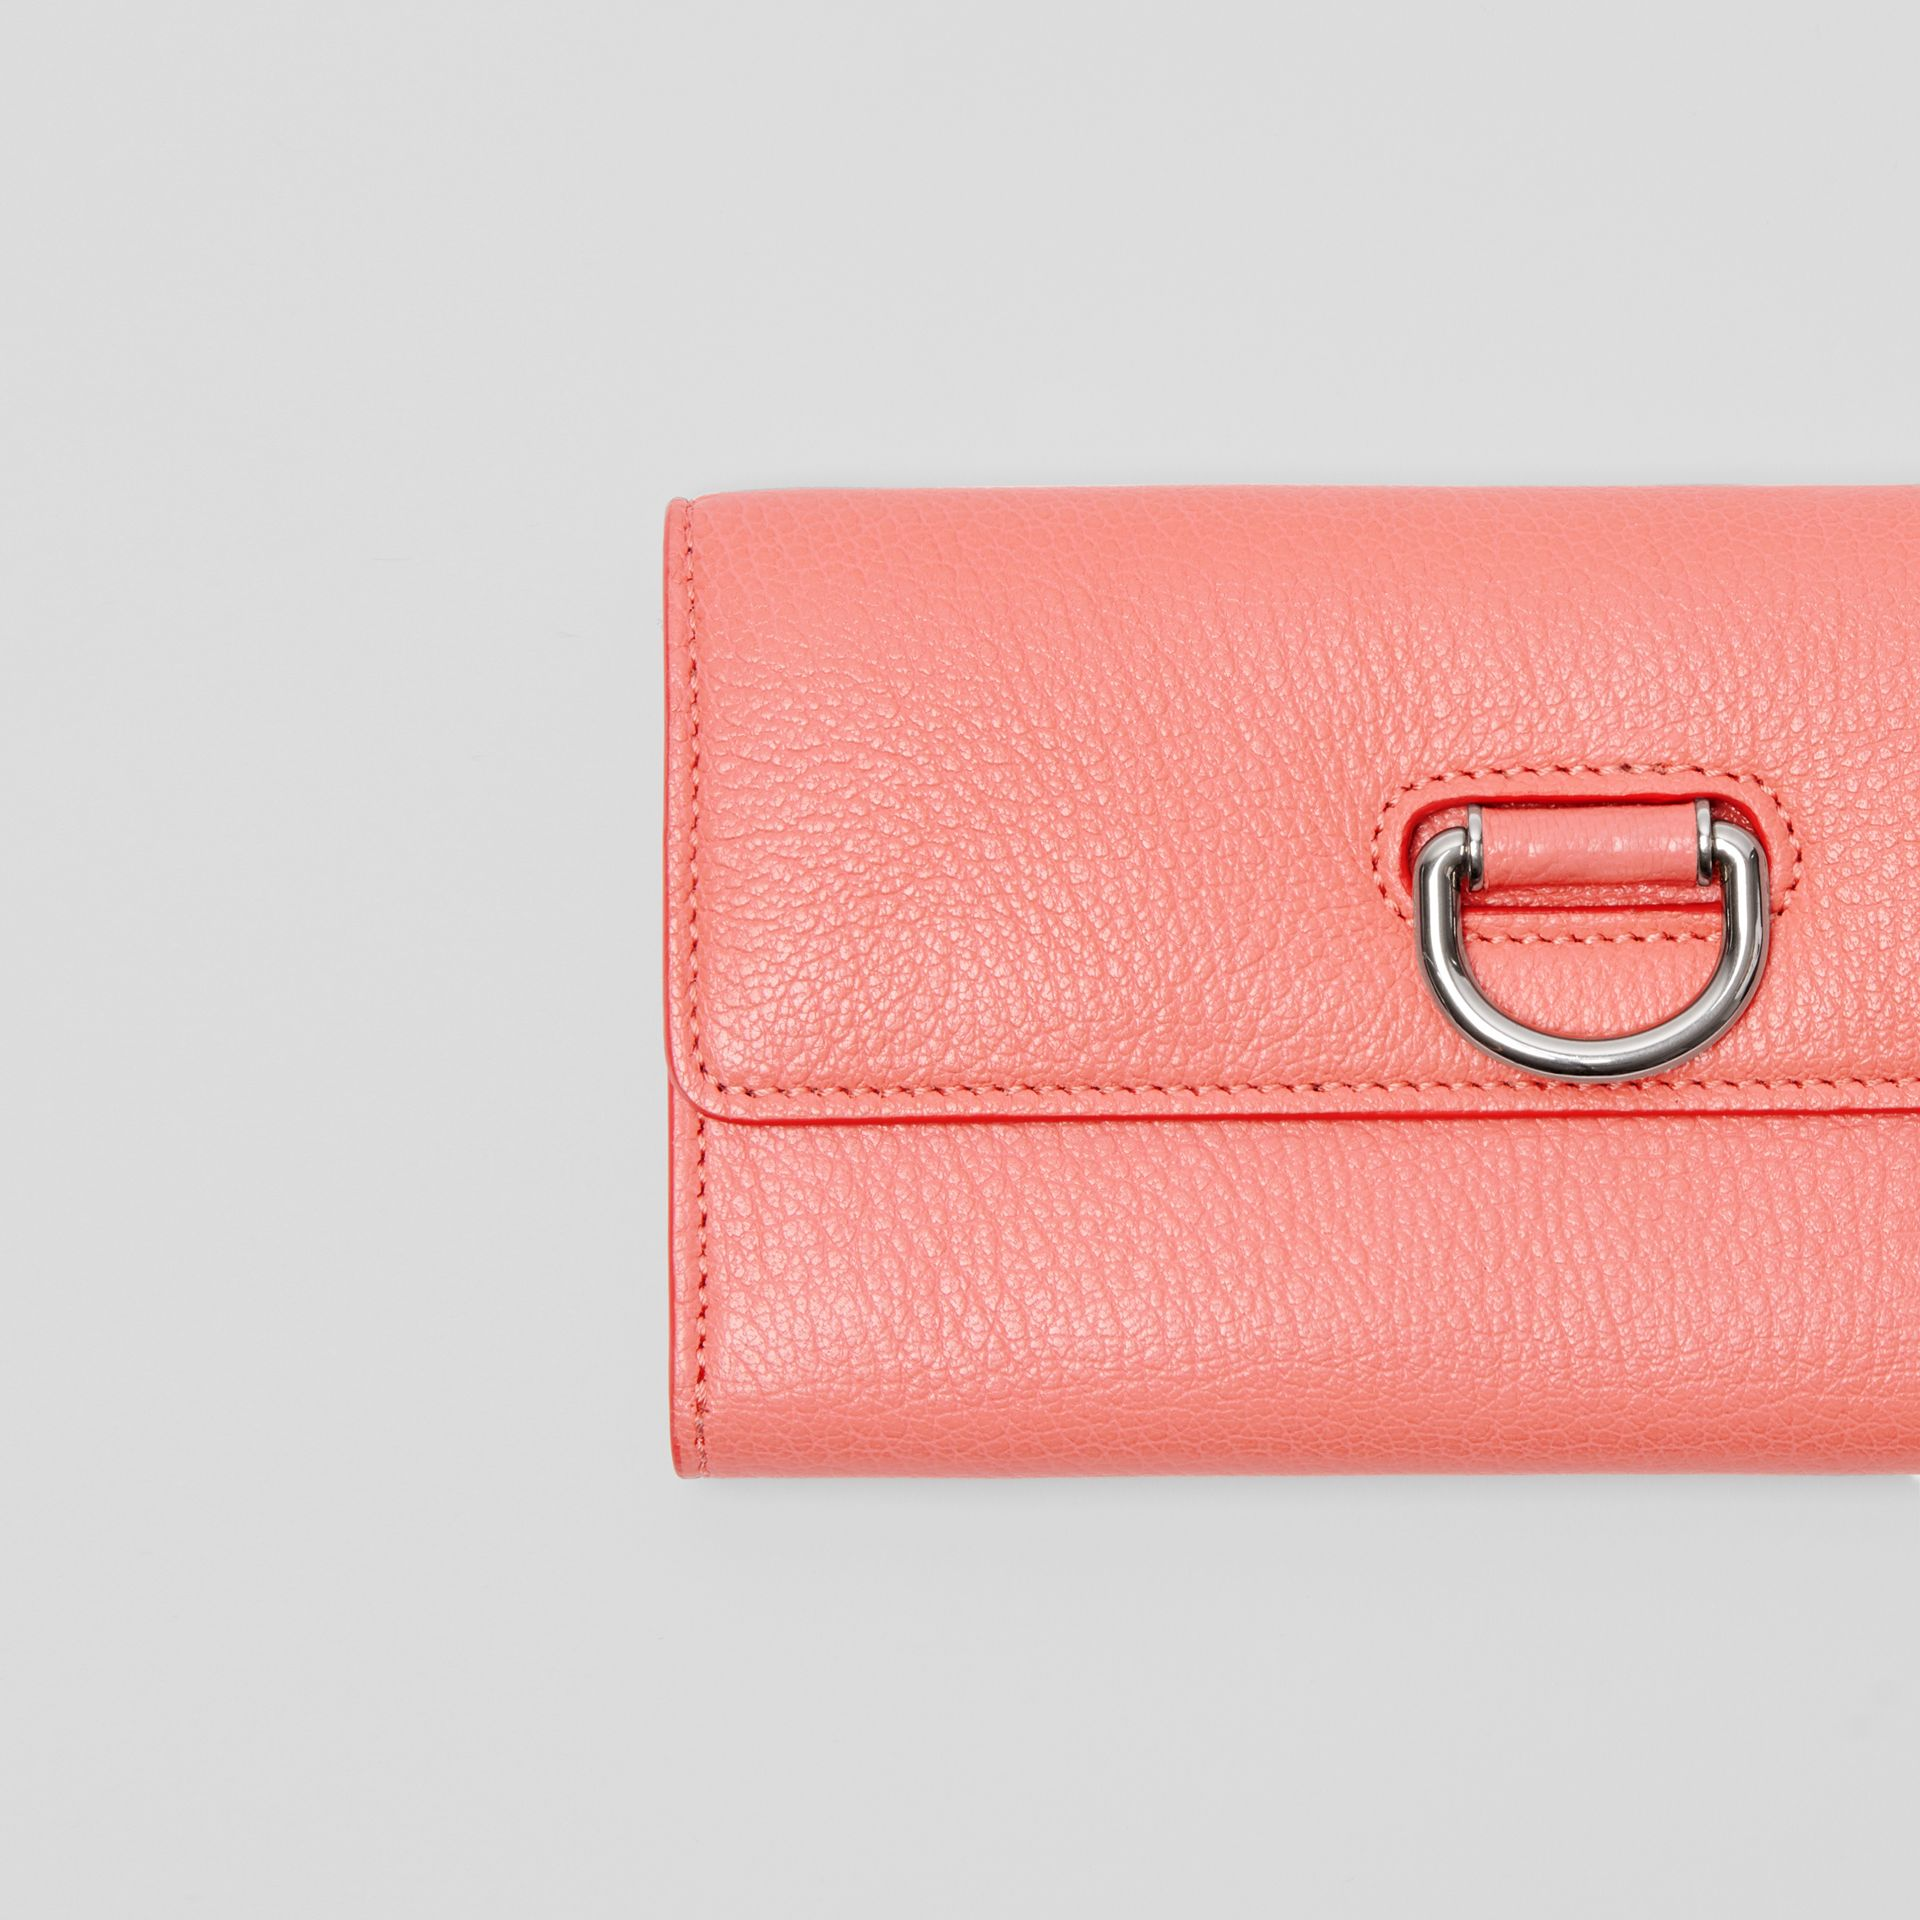 D-ring Grainy Leather Continental Wallet in Bright Coral Pink - Women | Burberry - gallery image 1